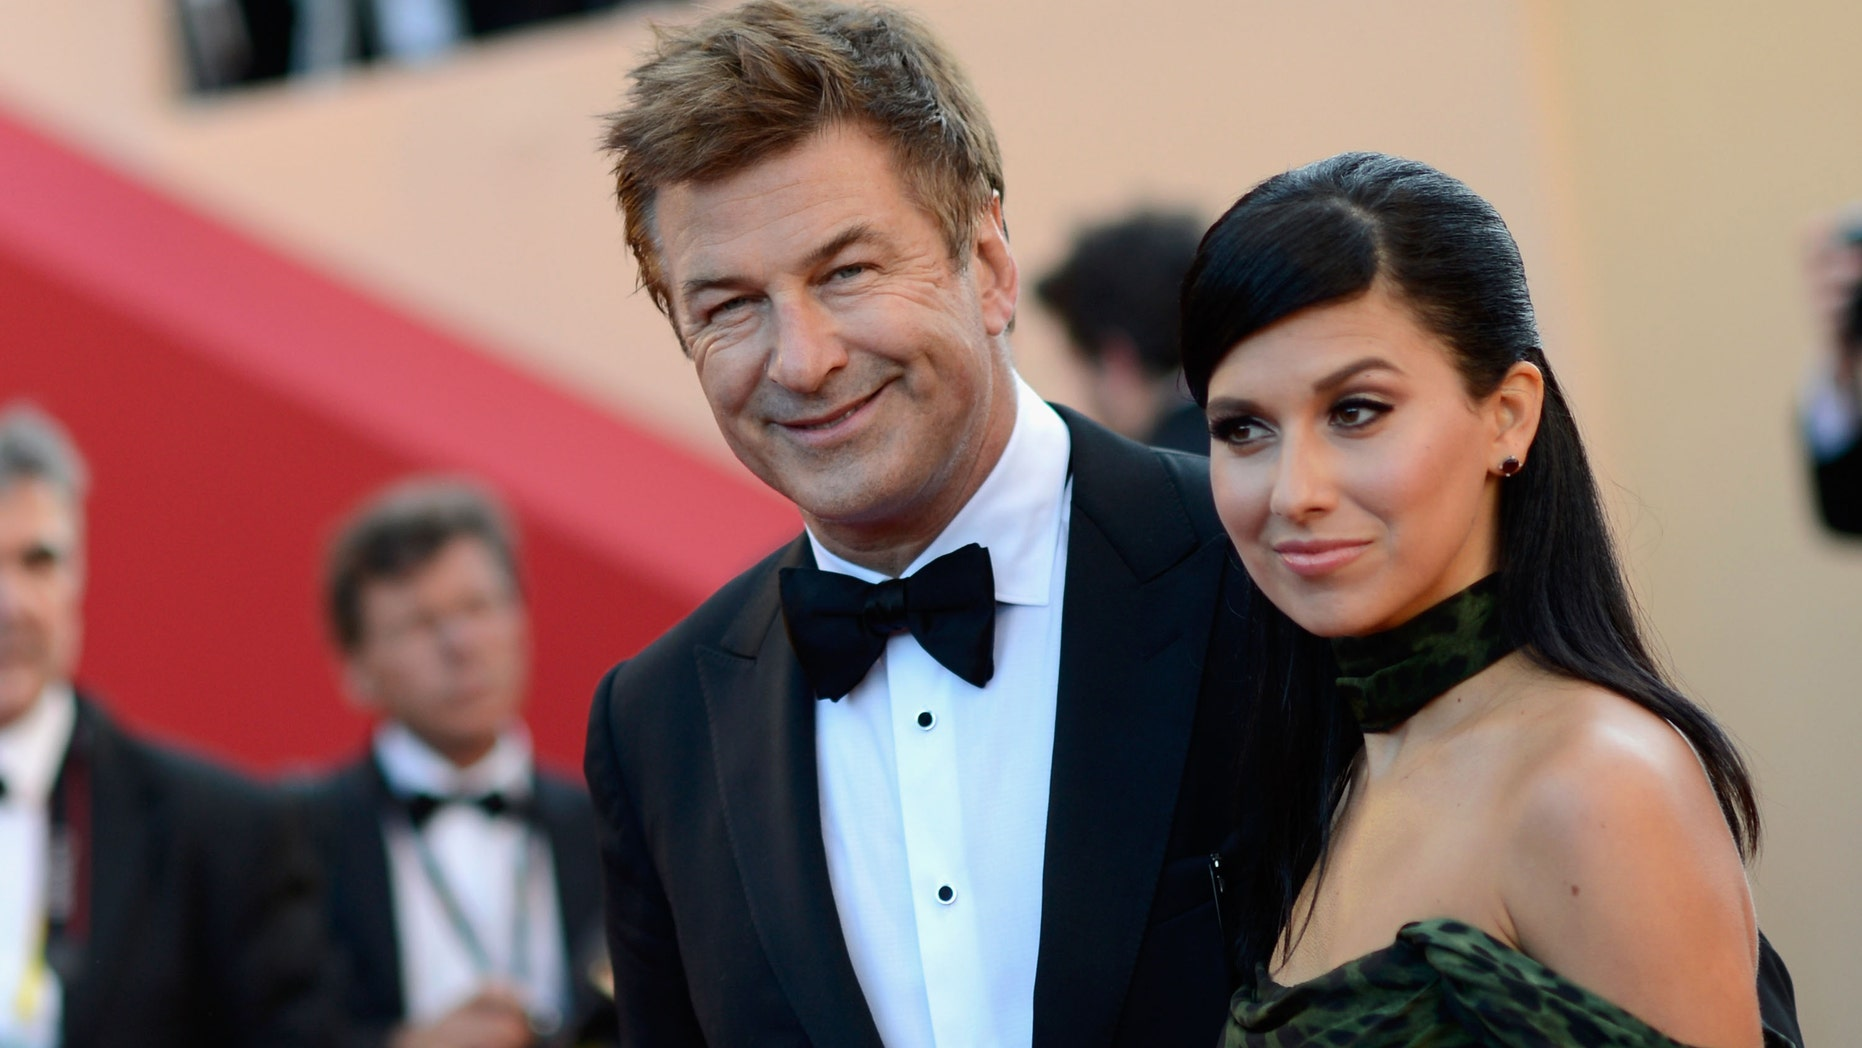 CANNES, FRANCE - MAY 22:  Actor Alec Baldwin and Hilaria Thomas attend the 'Killing Them Softly' Premiere during 65th Annual Cannes Film Festival at Palais des Festivals on May 22, 2012 in Cannes, France.  (Photo by Gareth Cattermole/Getty Images)